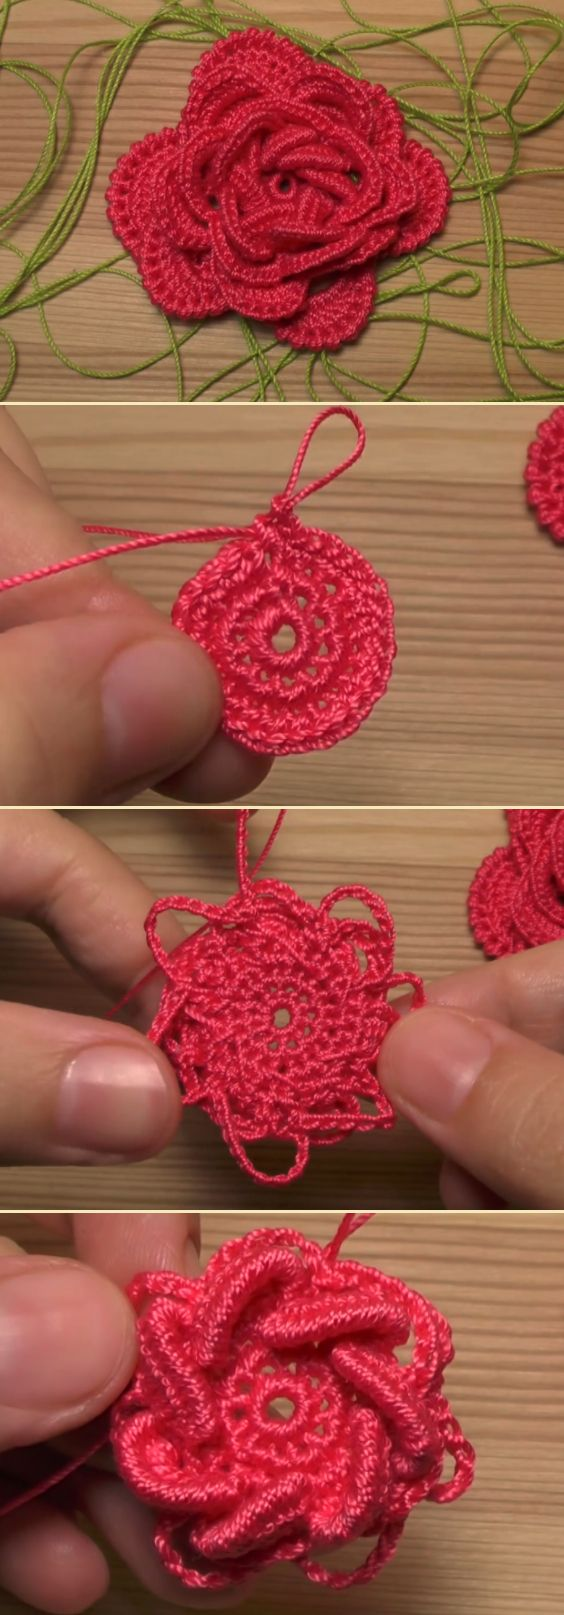 How To Crochet Flower Rose | Flores, Tejido y Ganchillo